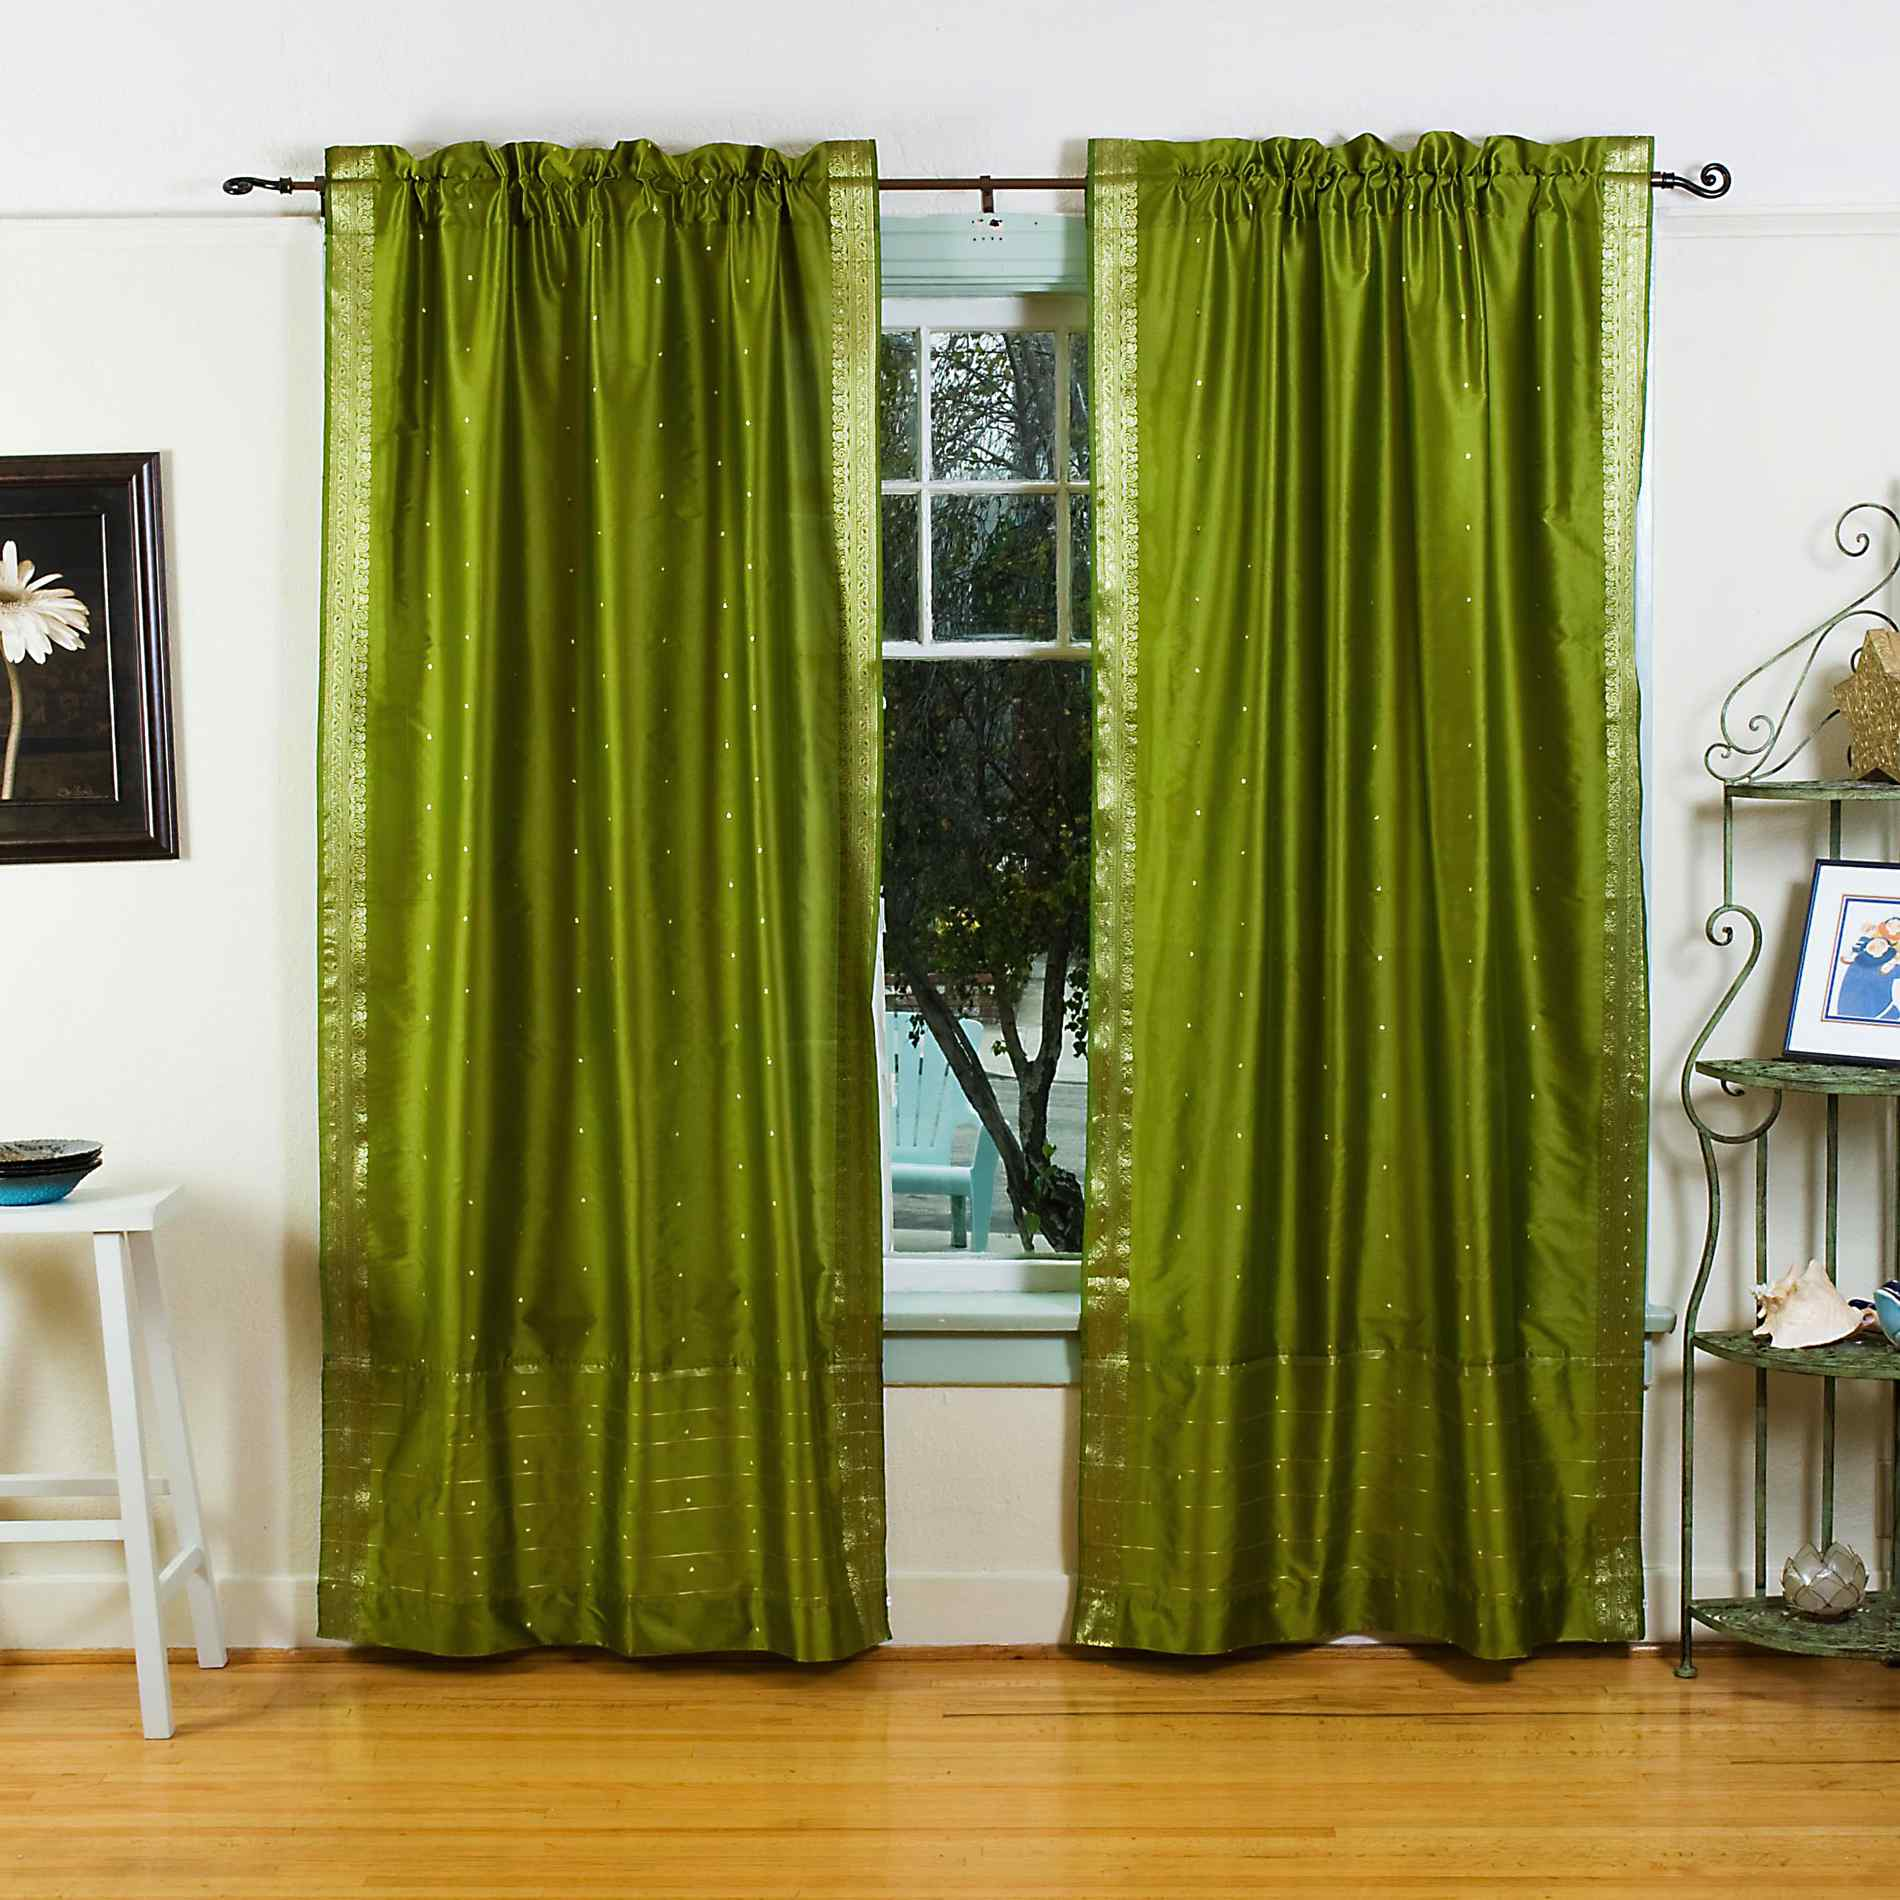 Curtains Ideas sheer linen curtains : Olive Green 84-inch Rod Pocket Sheer Sari Curtain Panel (India) - Pair